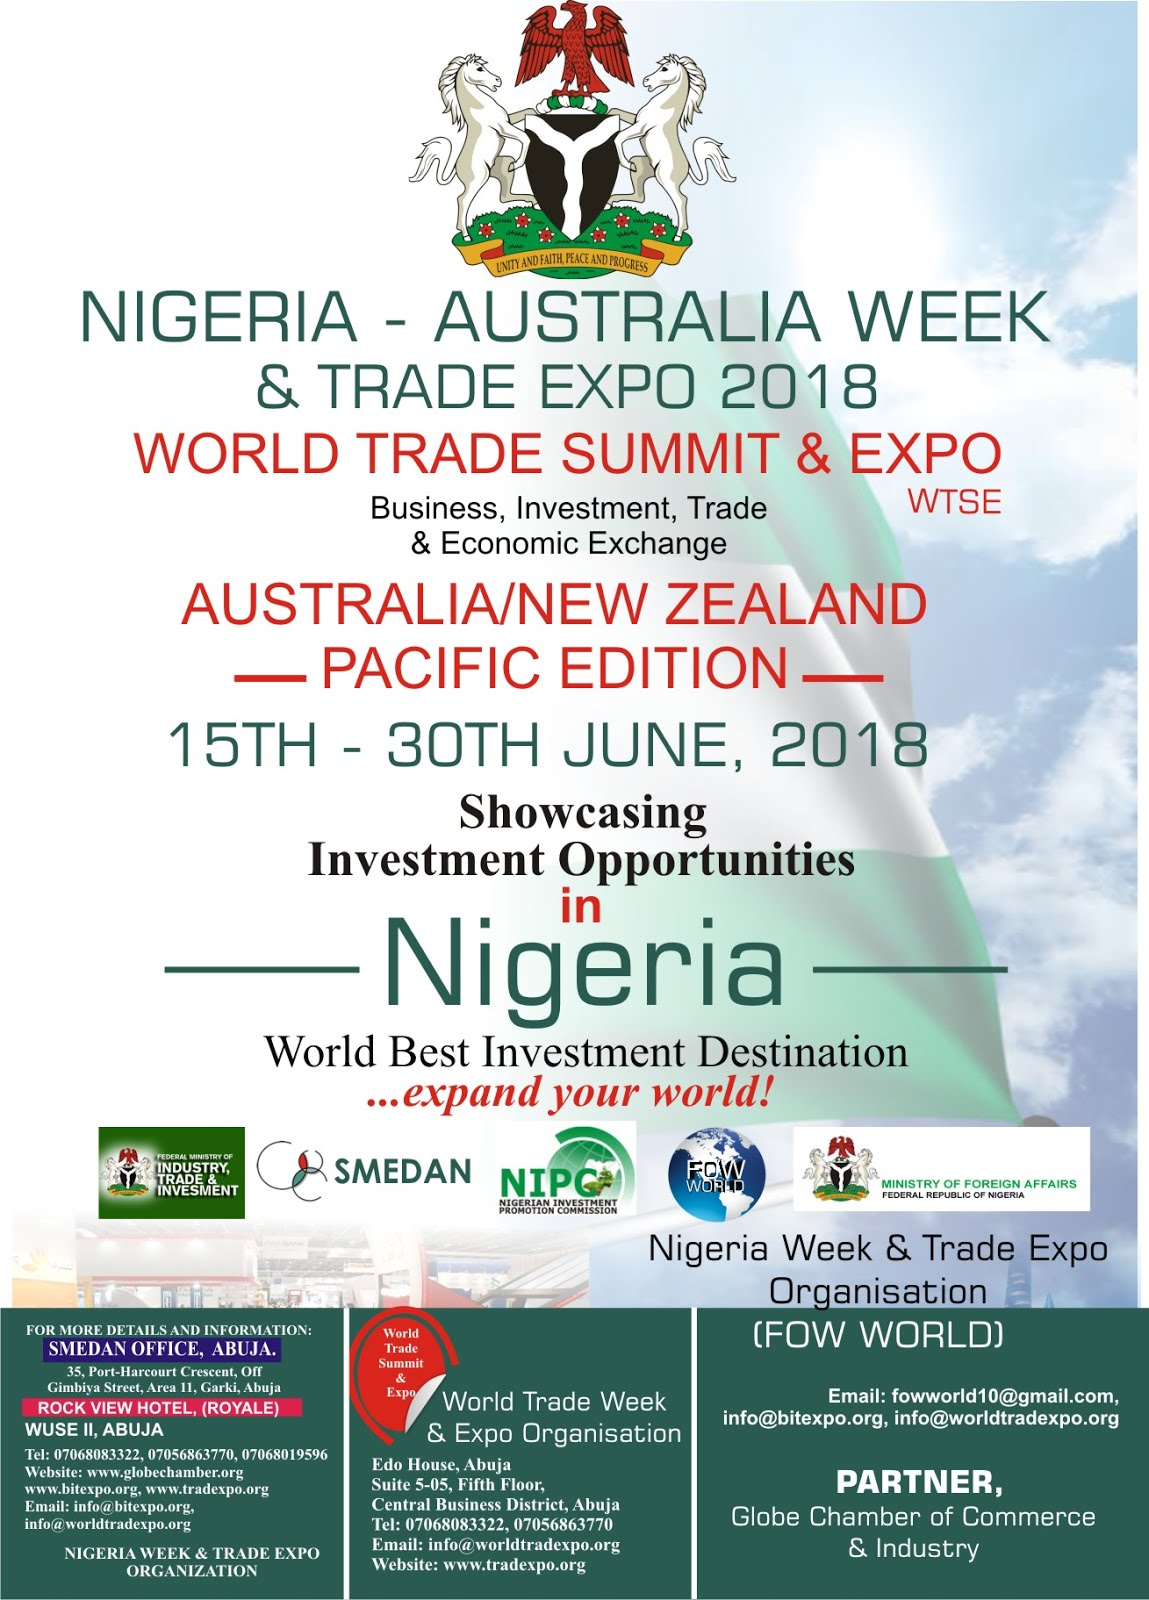 NIGERIA-AUSTRALIA WEEK & TRADE EXPO 2018